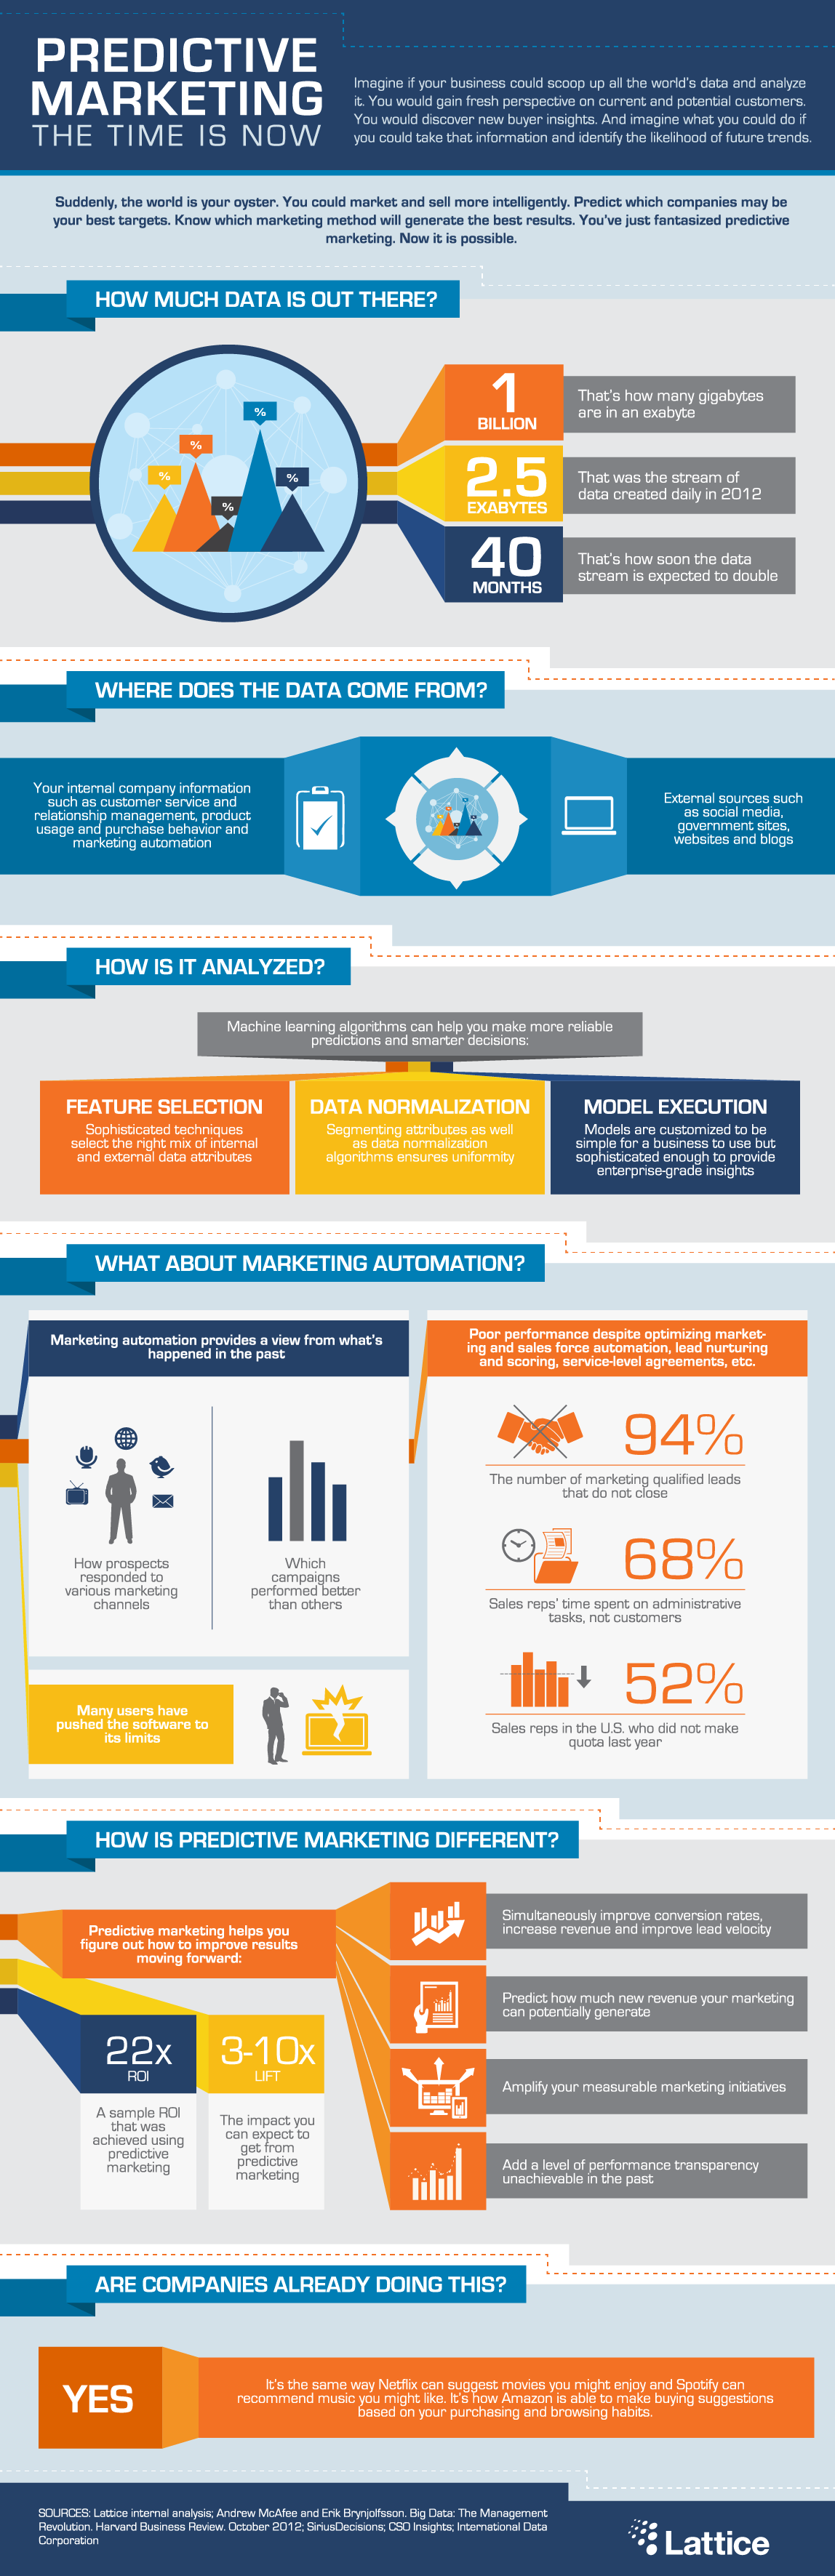 Infographic: Predictive Marketing: The Time is Now #infographic